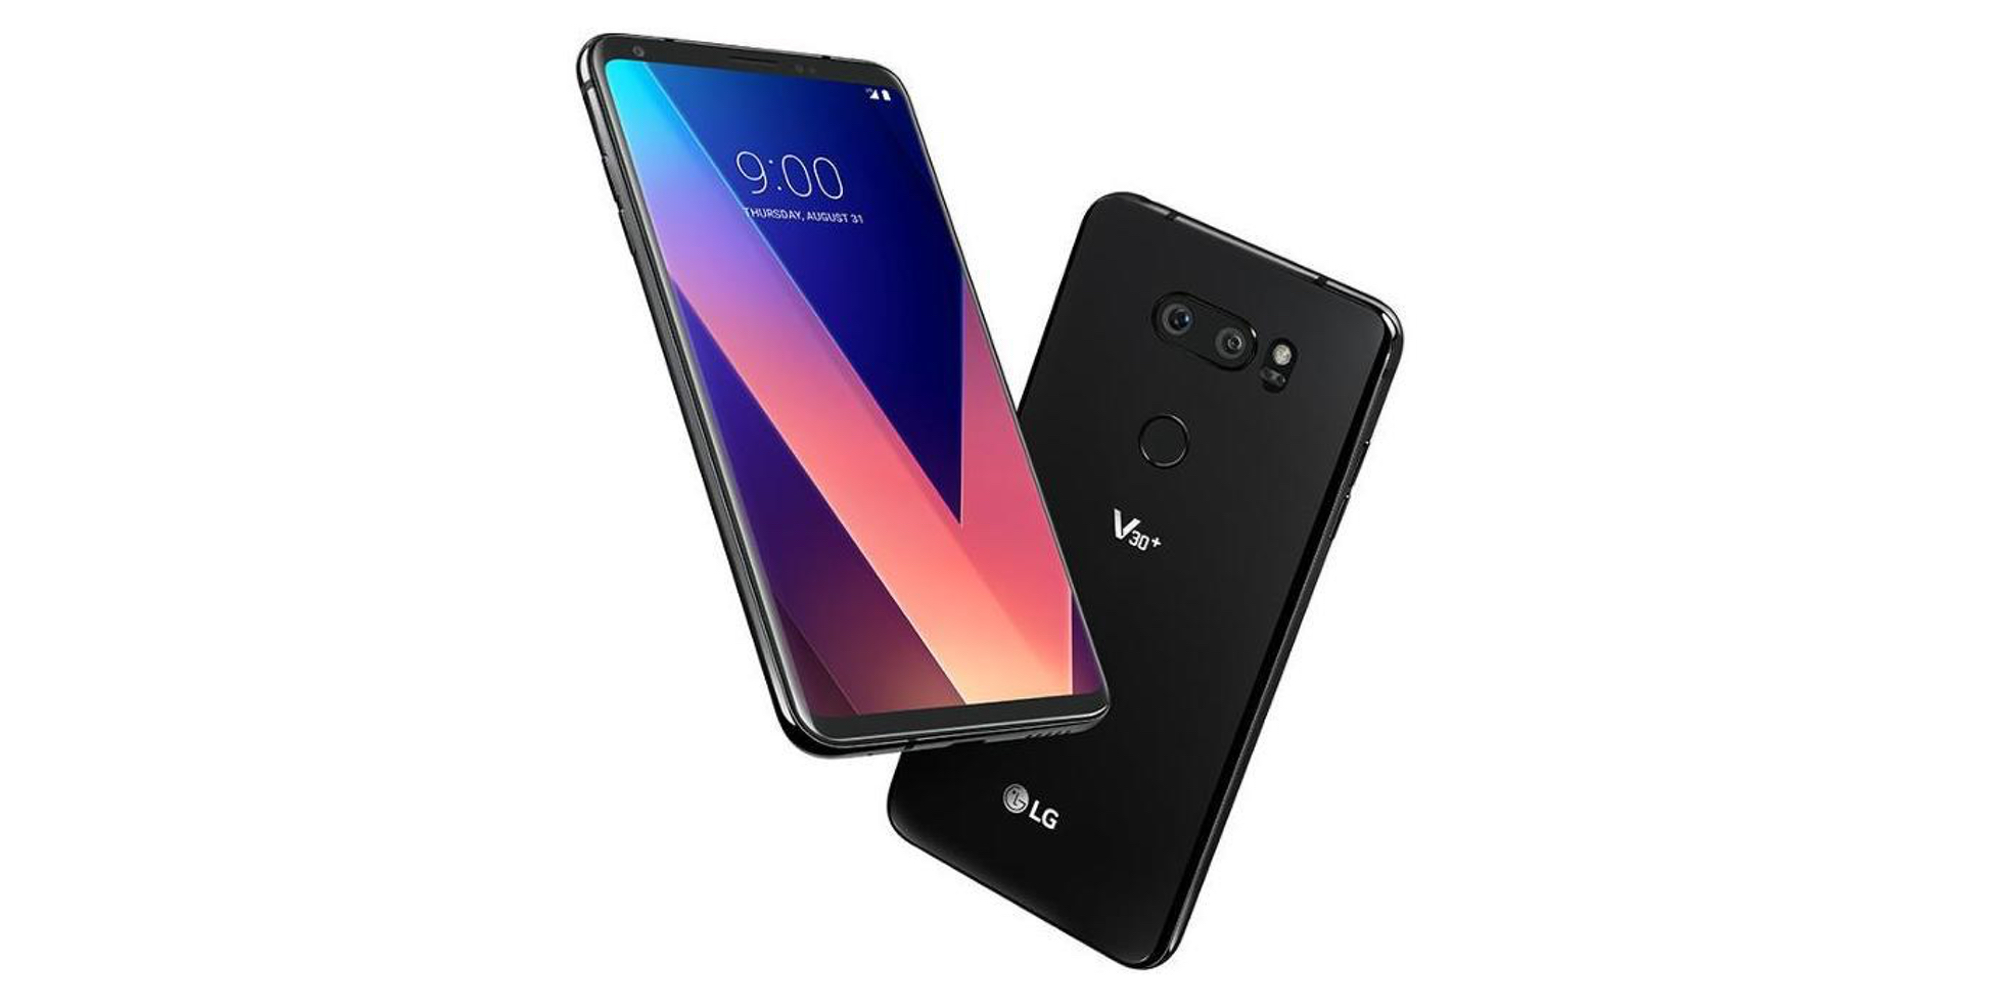 Today only, the LG V30+ 128GB Smartphone plus a $25 GC can be yours for $400 ($525 value)